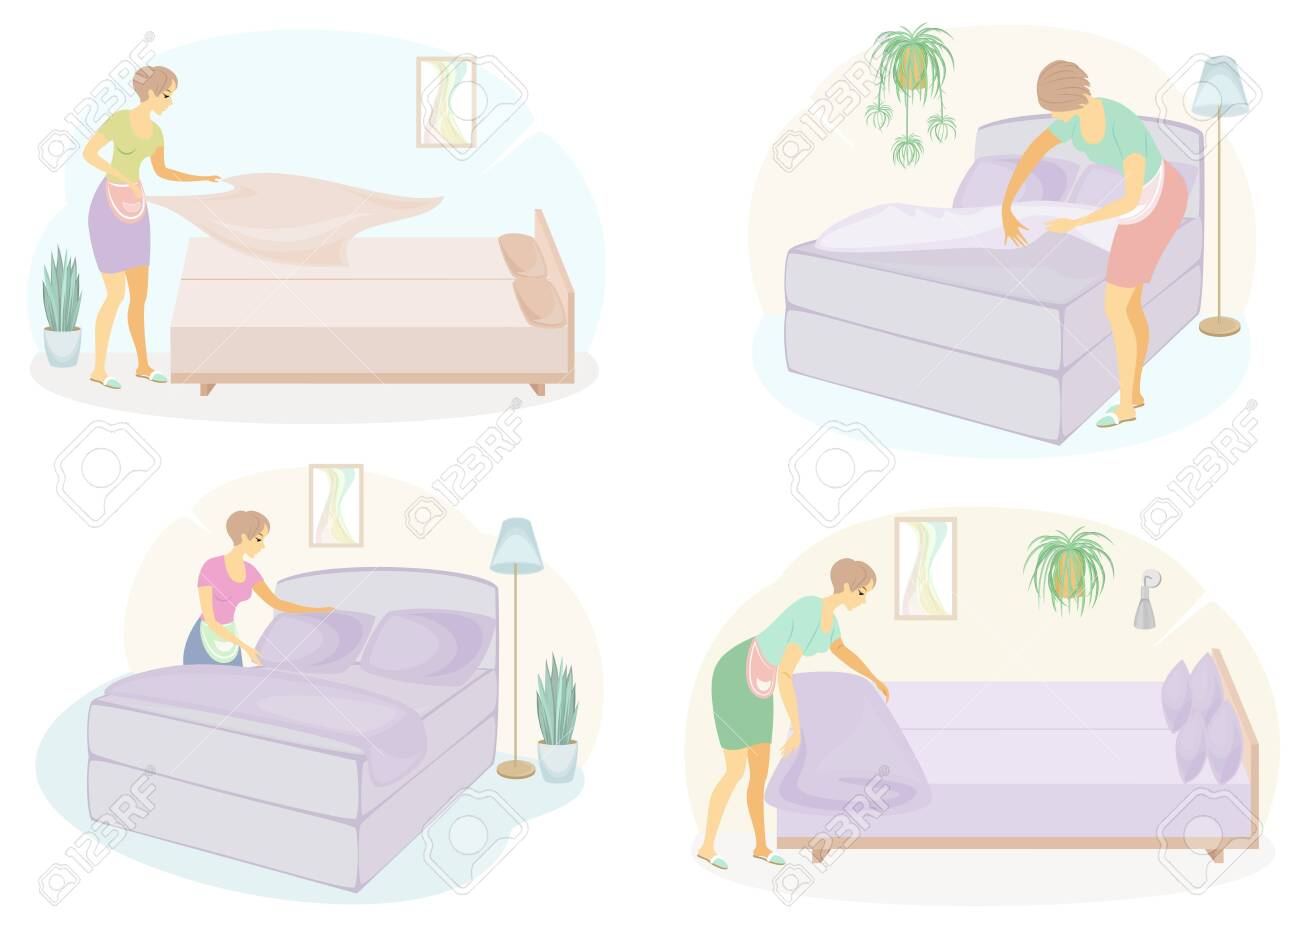 Collection. Profile of a cute lady. The girl makes the bed in the room. The woman is a good wife and a tidy housewife. Vector illustration of a set. - 148199362